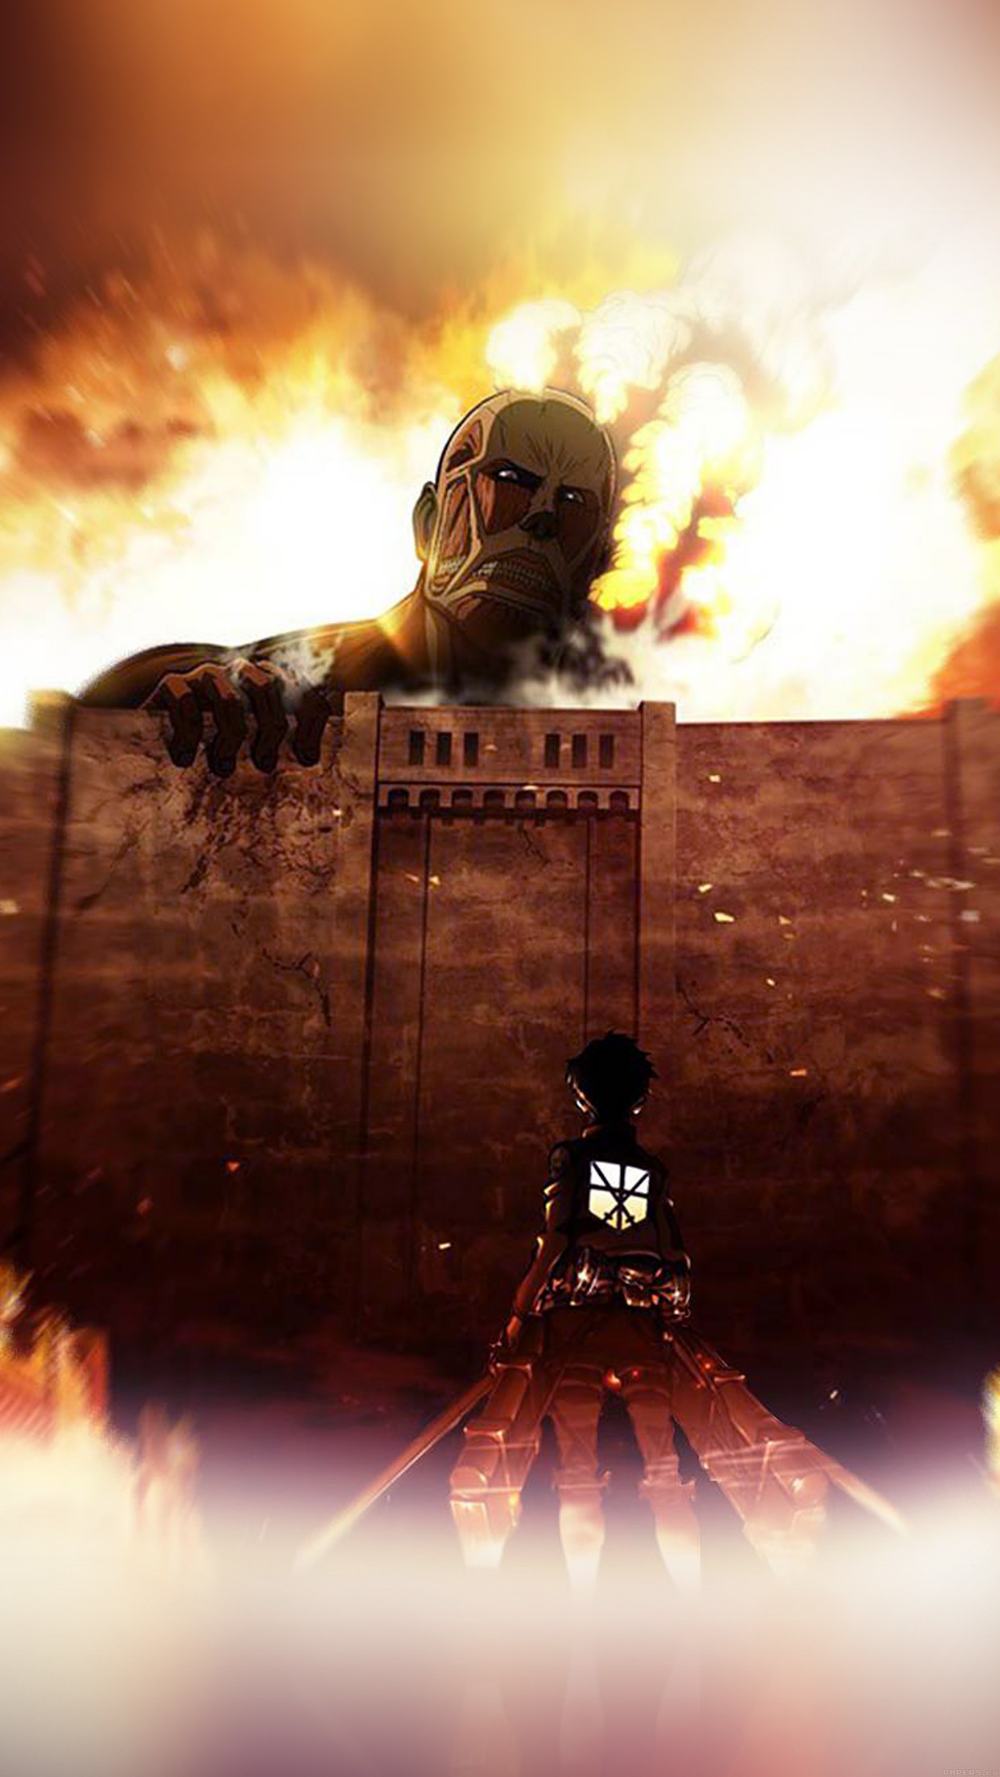 There's always talk about the quality animation in attack on titan. Pin by Lennel on Attack on titan in 2020   Attack on titan ...